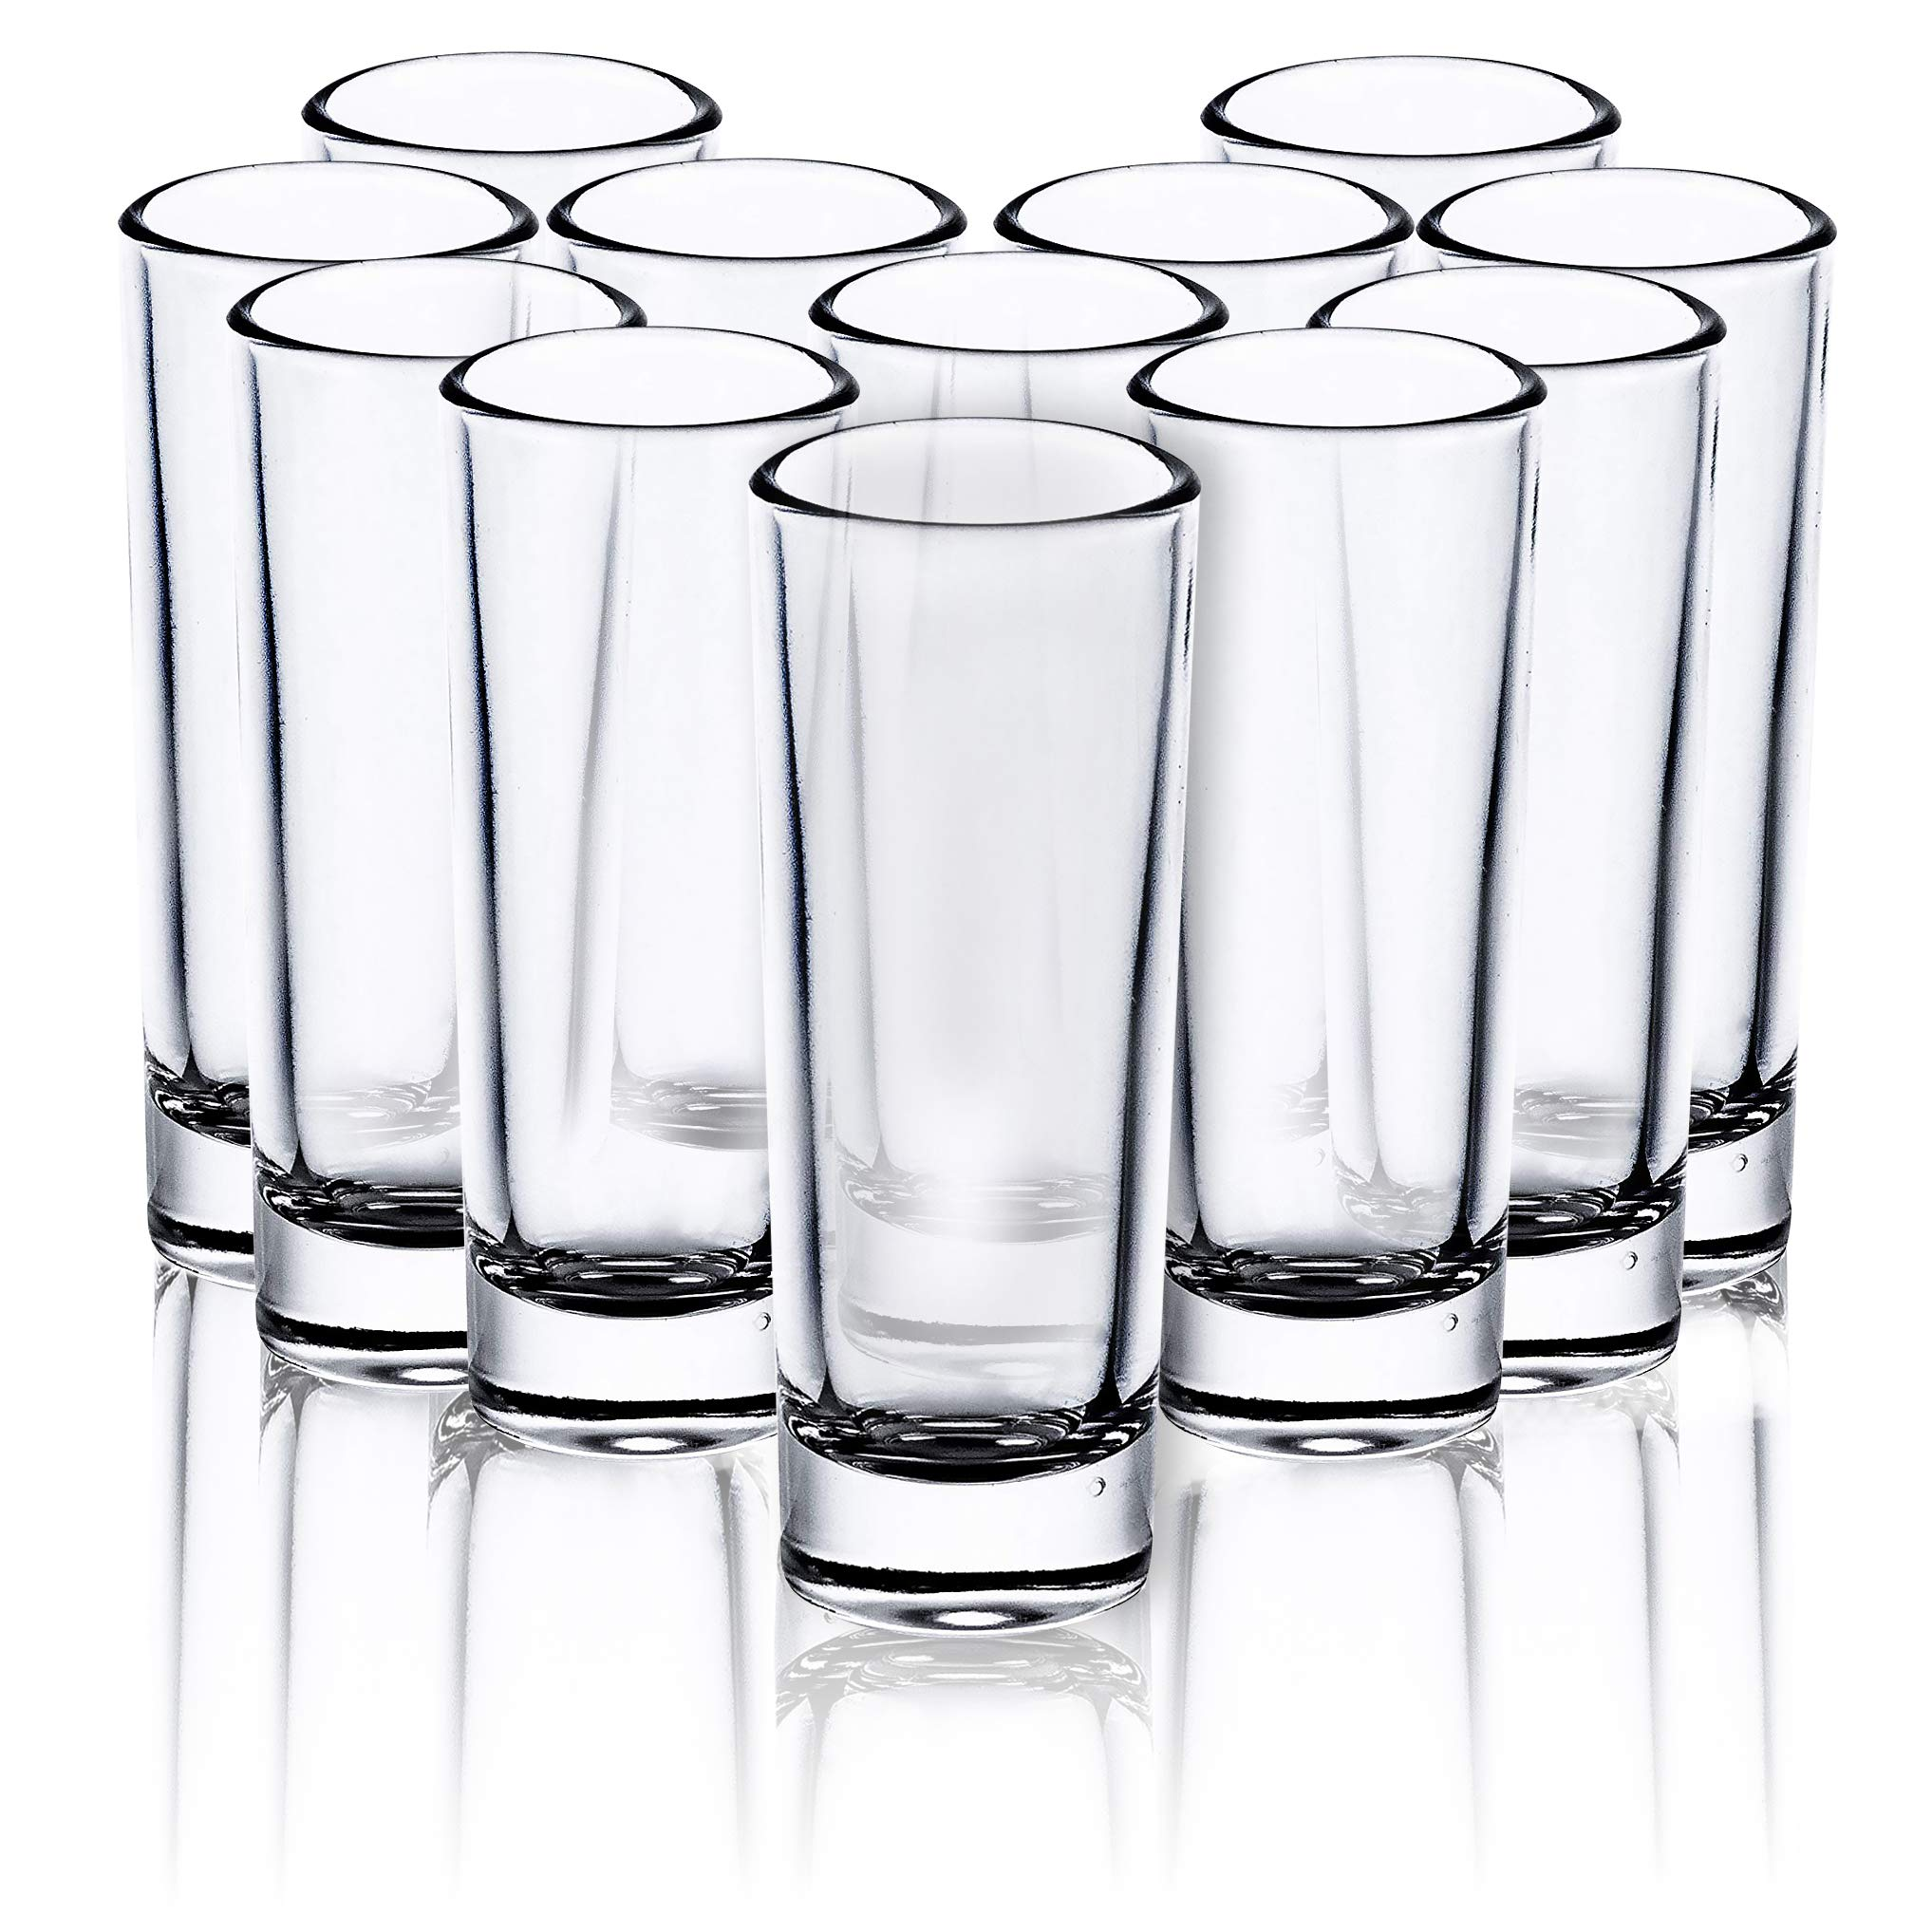 Juvale Bulk 24-Pack Clear Shooters Tall Shot Glasses for Parties, Parfaits, Dessert, Tequila, Whiskey, Vodka - 2 Ounces